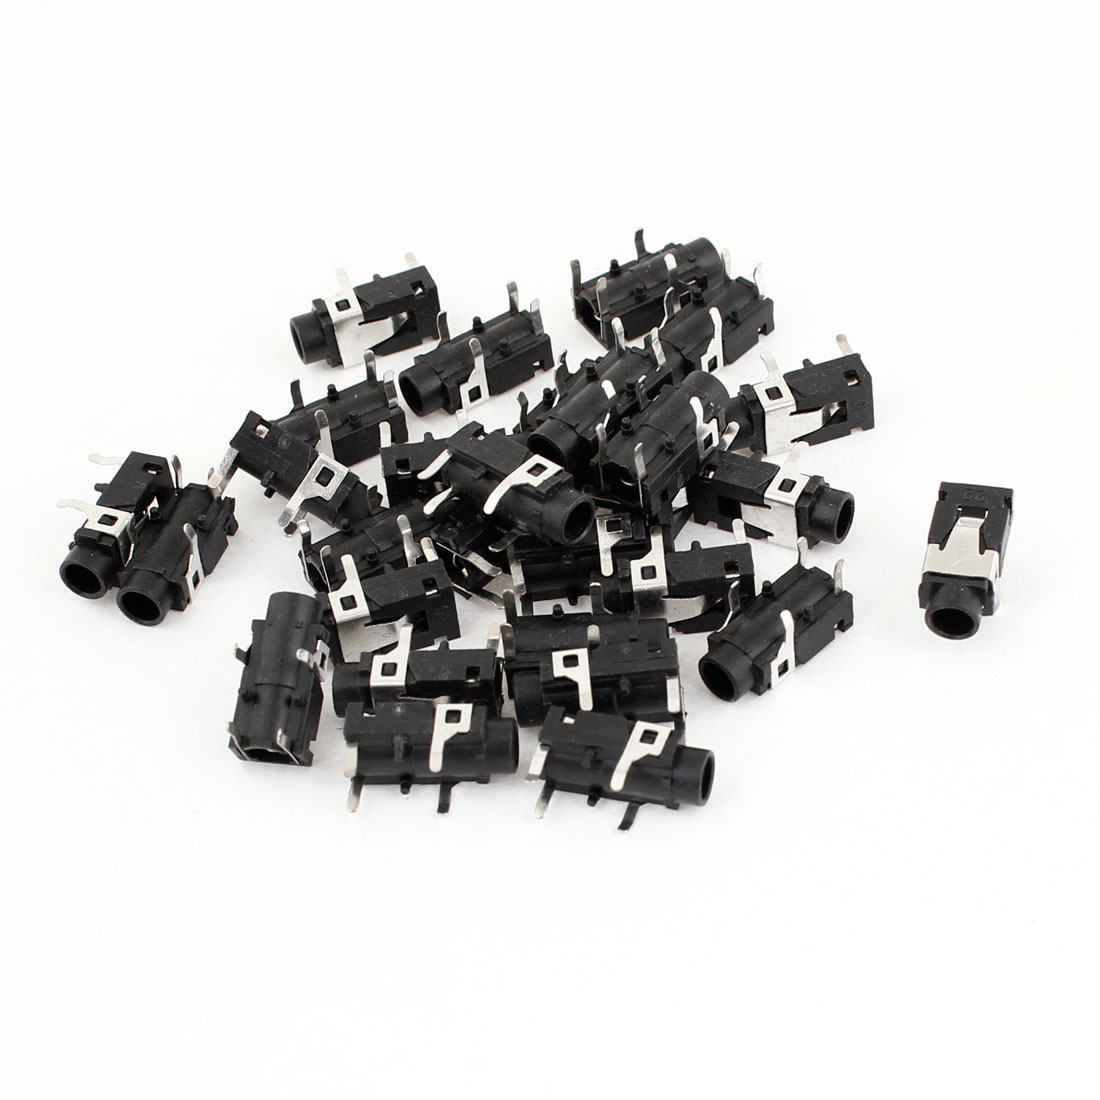 Black Silver Tone 4 Pin 3.5mm Stereo Jack Socket PCB Mount Connector 30PCS